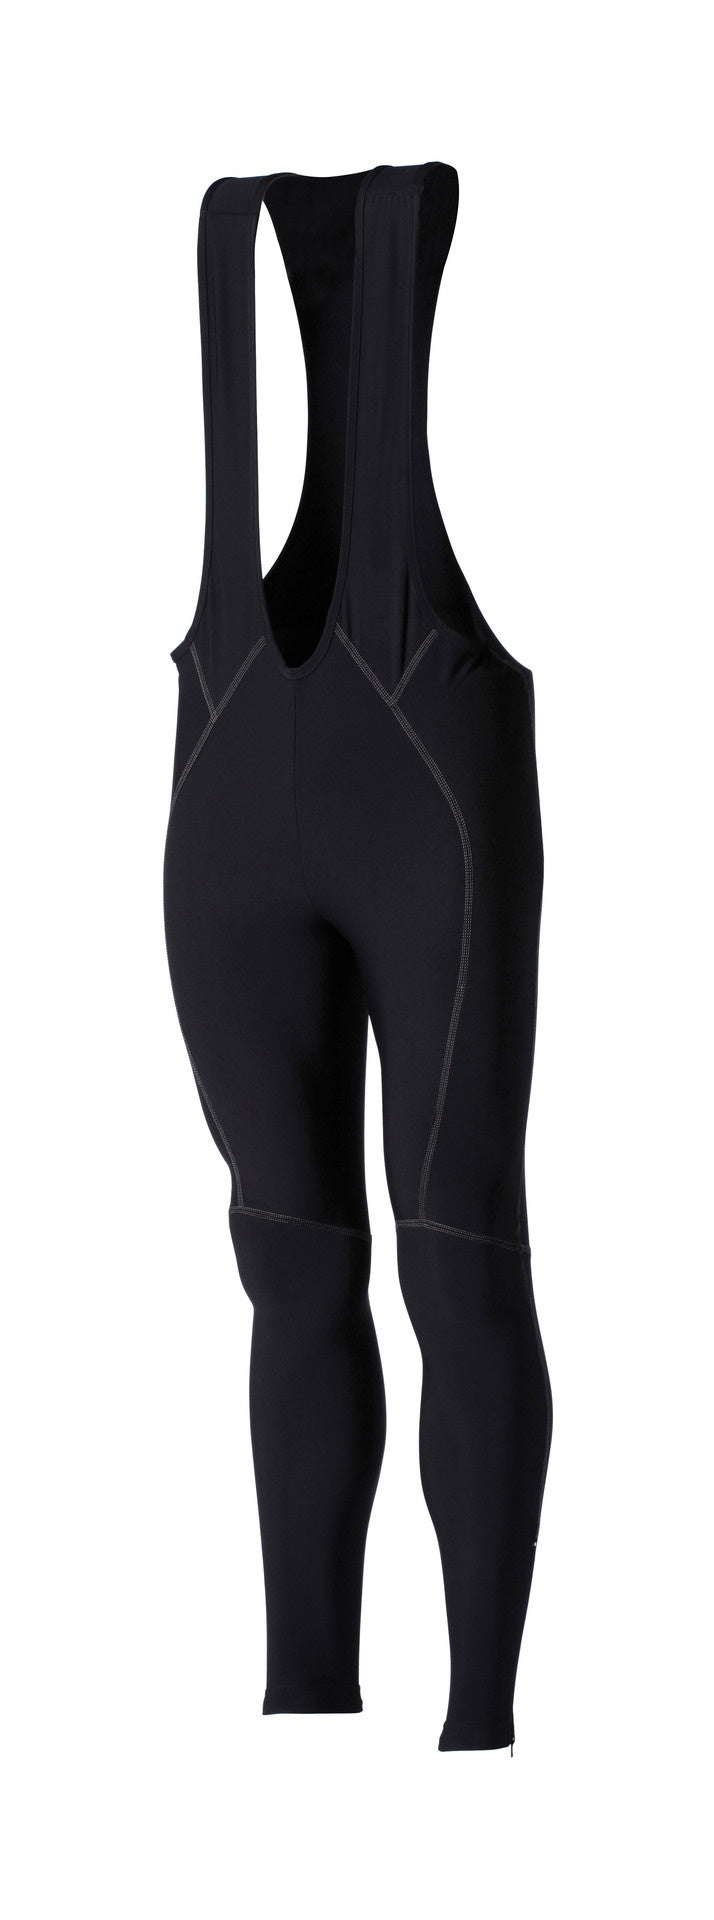 Quadra Bib Tight Black (L)